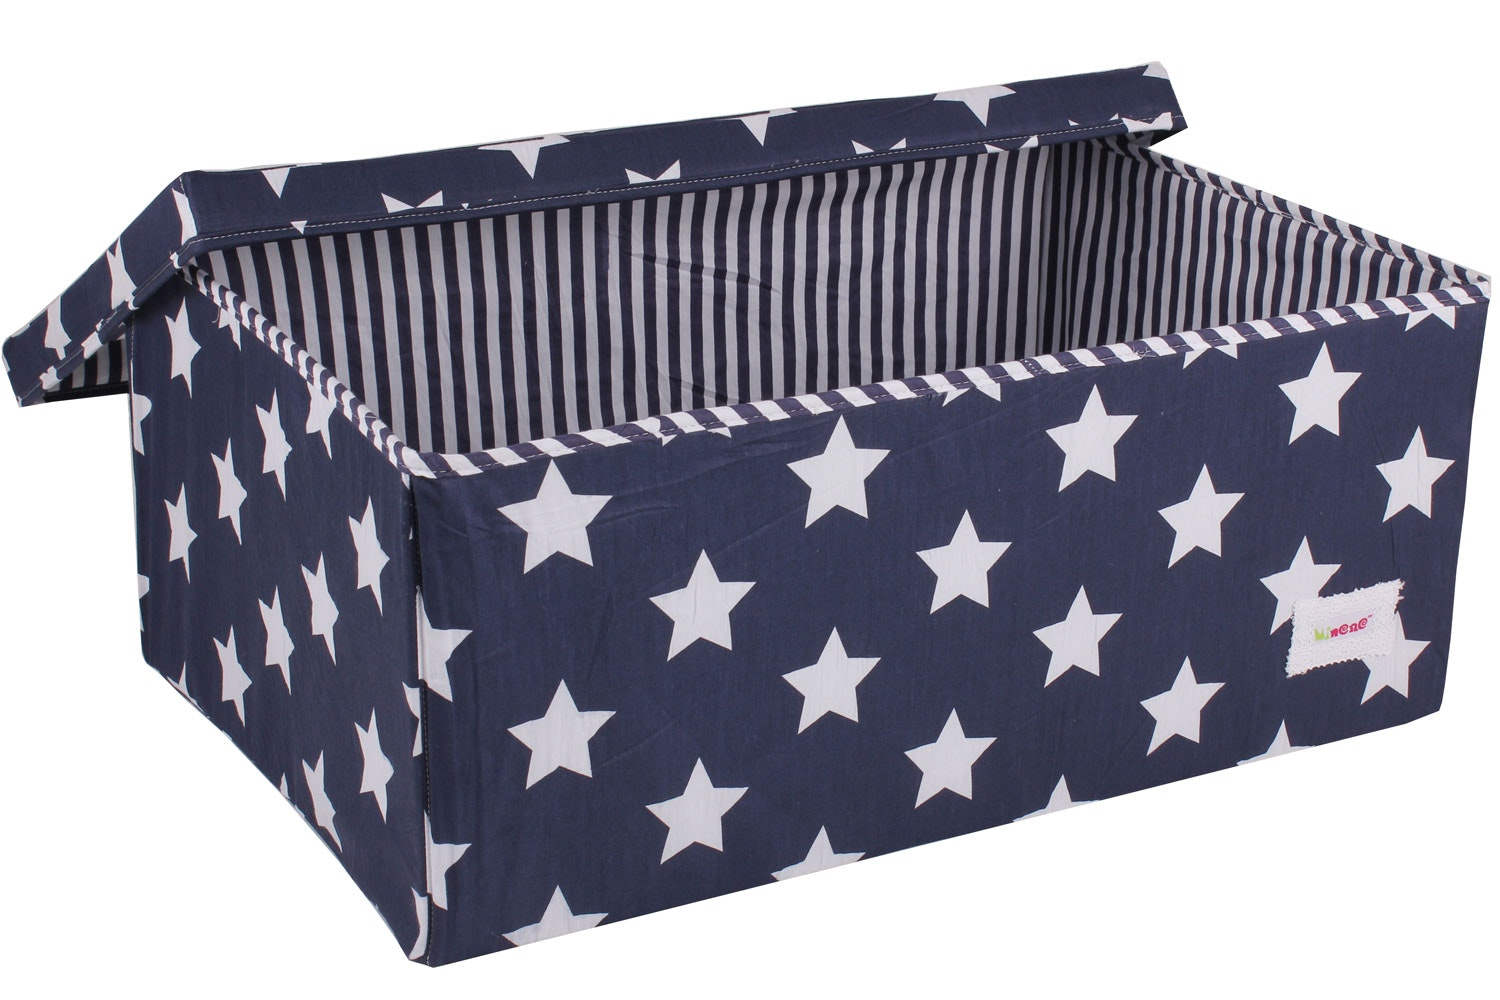 Minene Large Storage Box | Navy Star